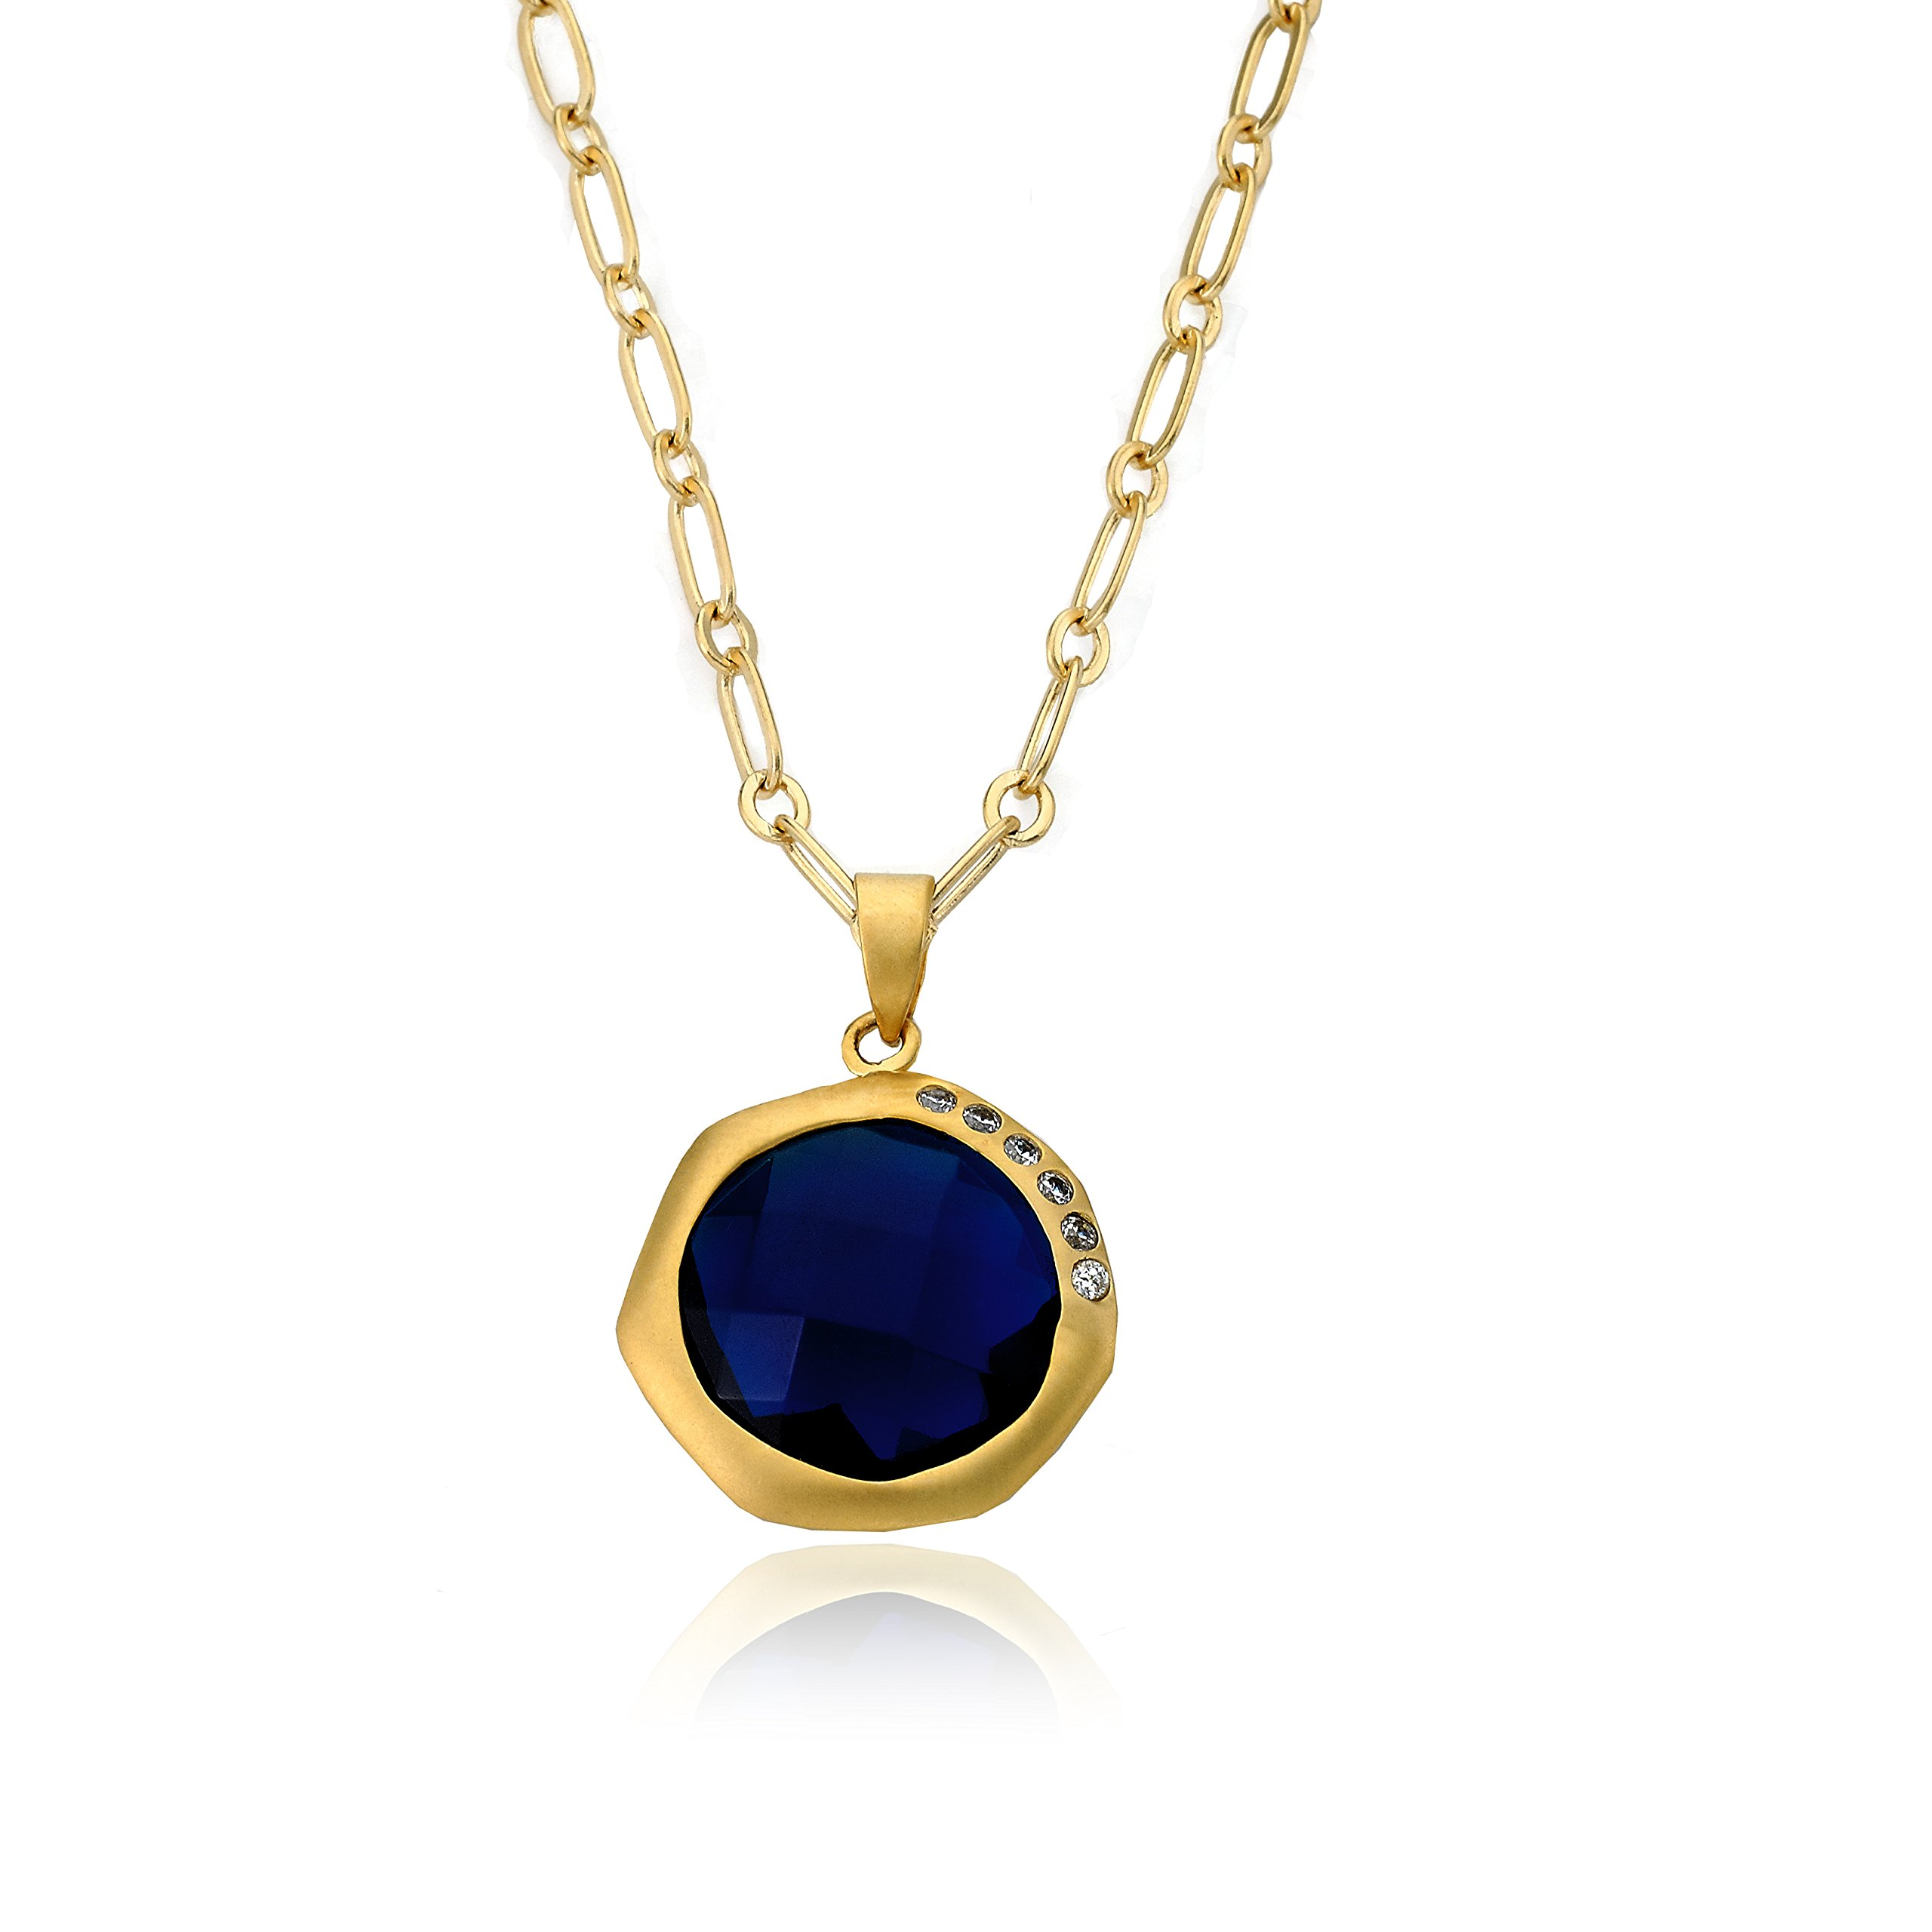 Riccova City Lights Satin 14k Gold-Plated Cubic Zirconia Multi-Faceted Blue Stone Pendant Necklace